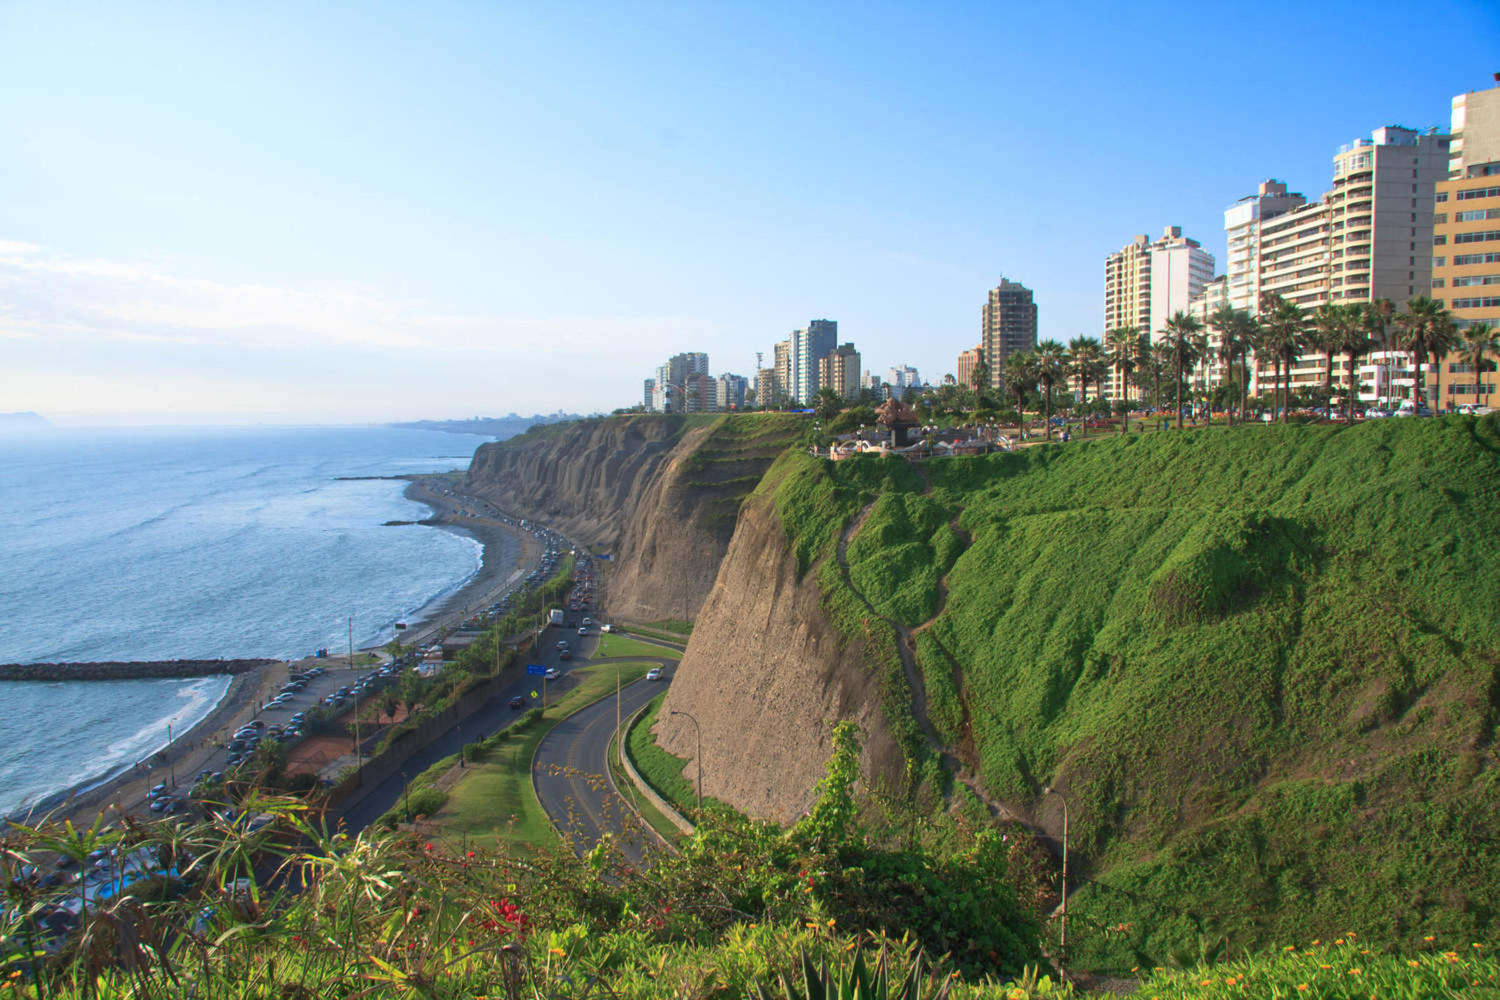 peru-lima-miraflores-town-landscapes-in-lima